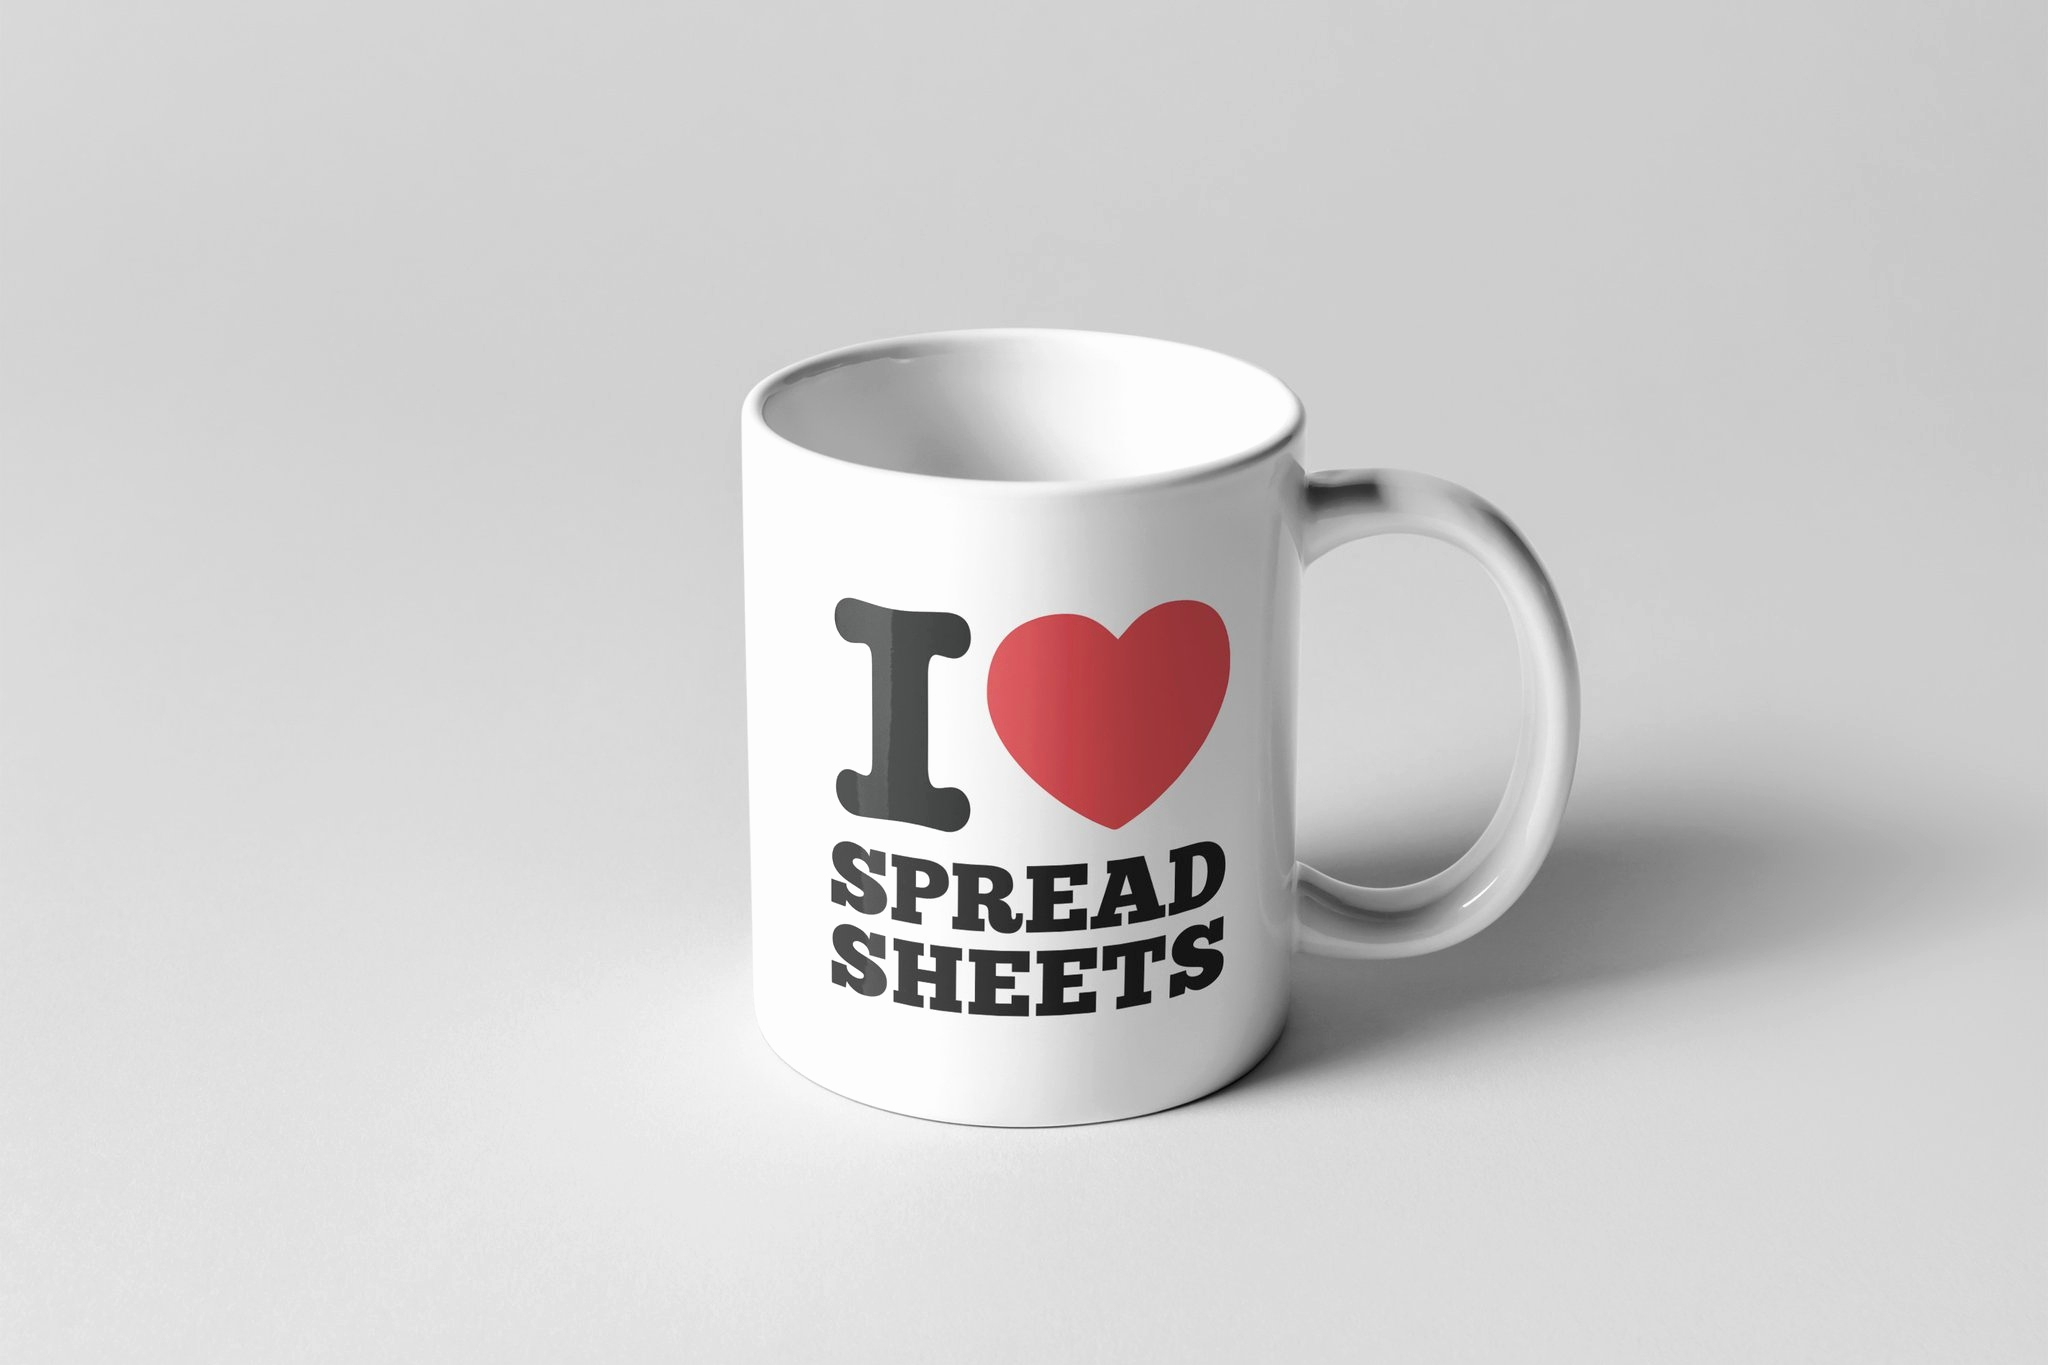 I Heart Spreadsheets Mug Best Of 50 Inspirational I Heart Inside I Heart Spreadsheets Mug